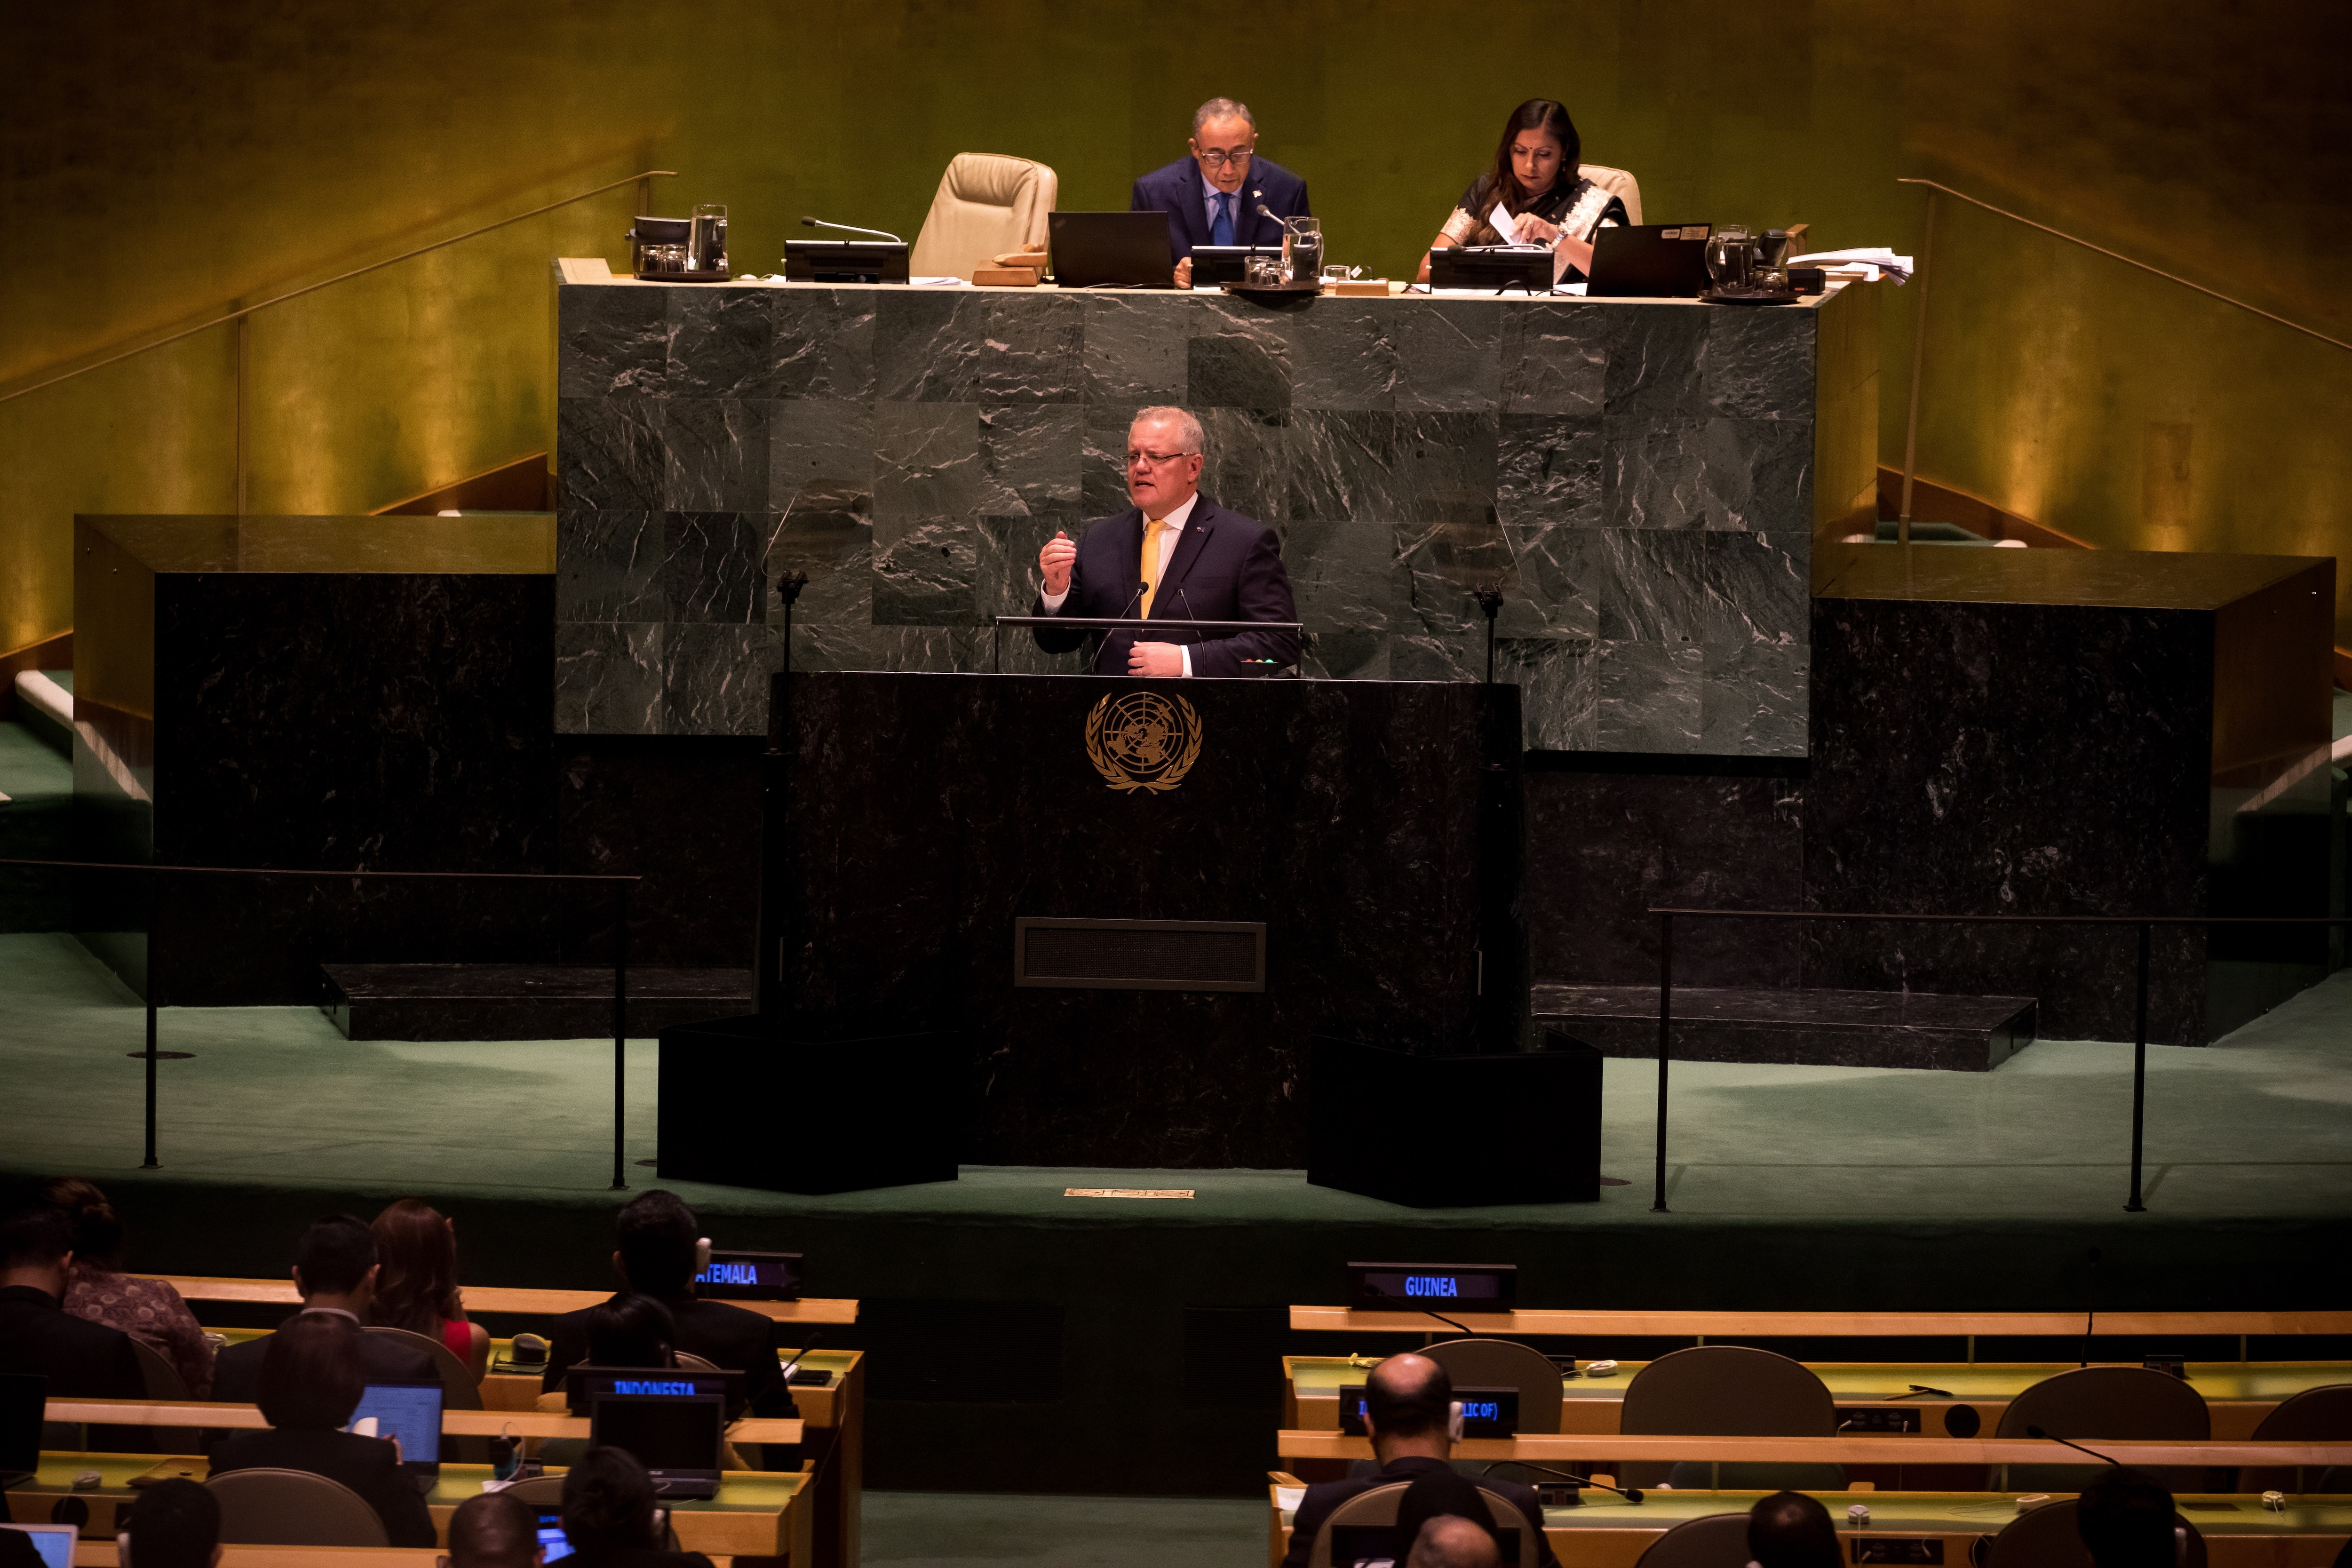 Prime Minister Scott Morrison addressed critics of Australia's action on climate change at the UN General Assembly.